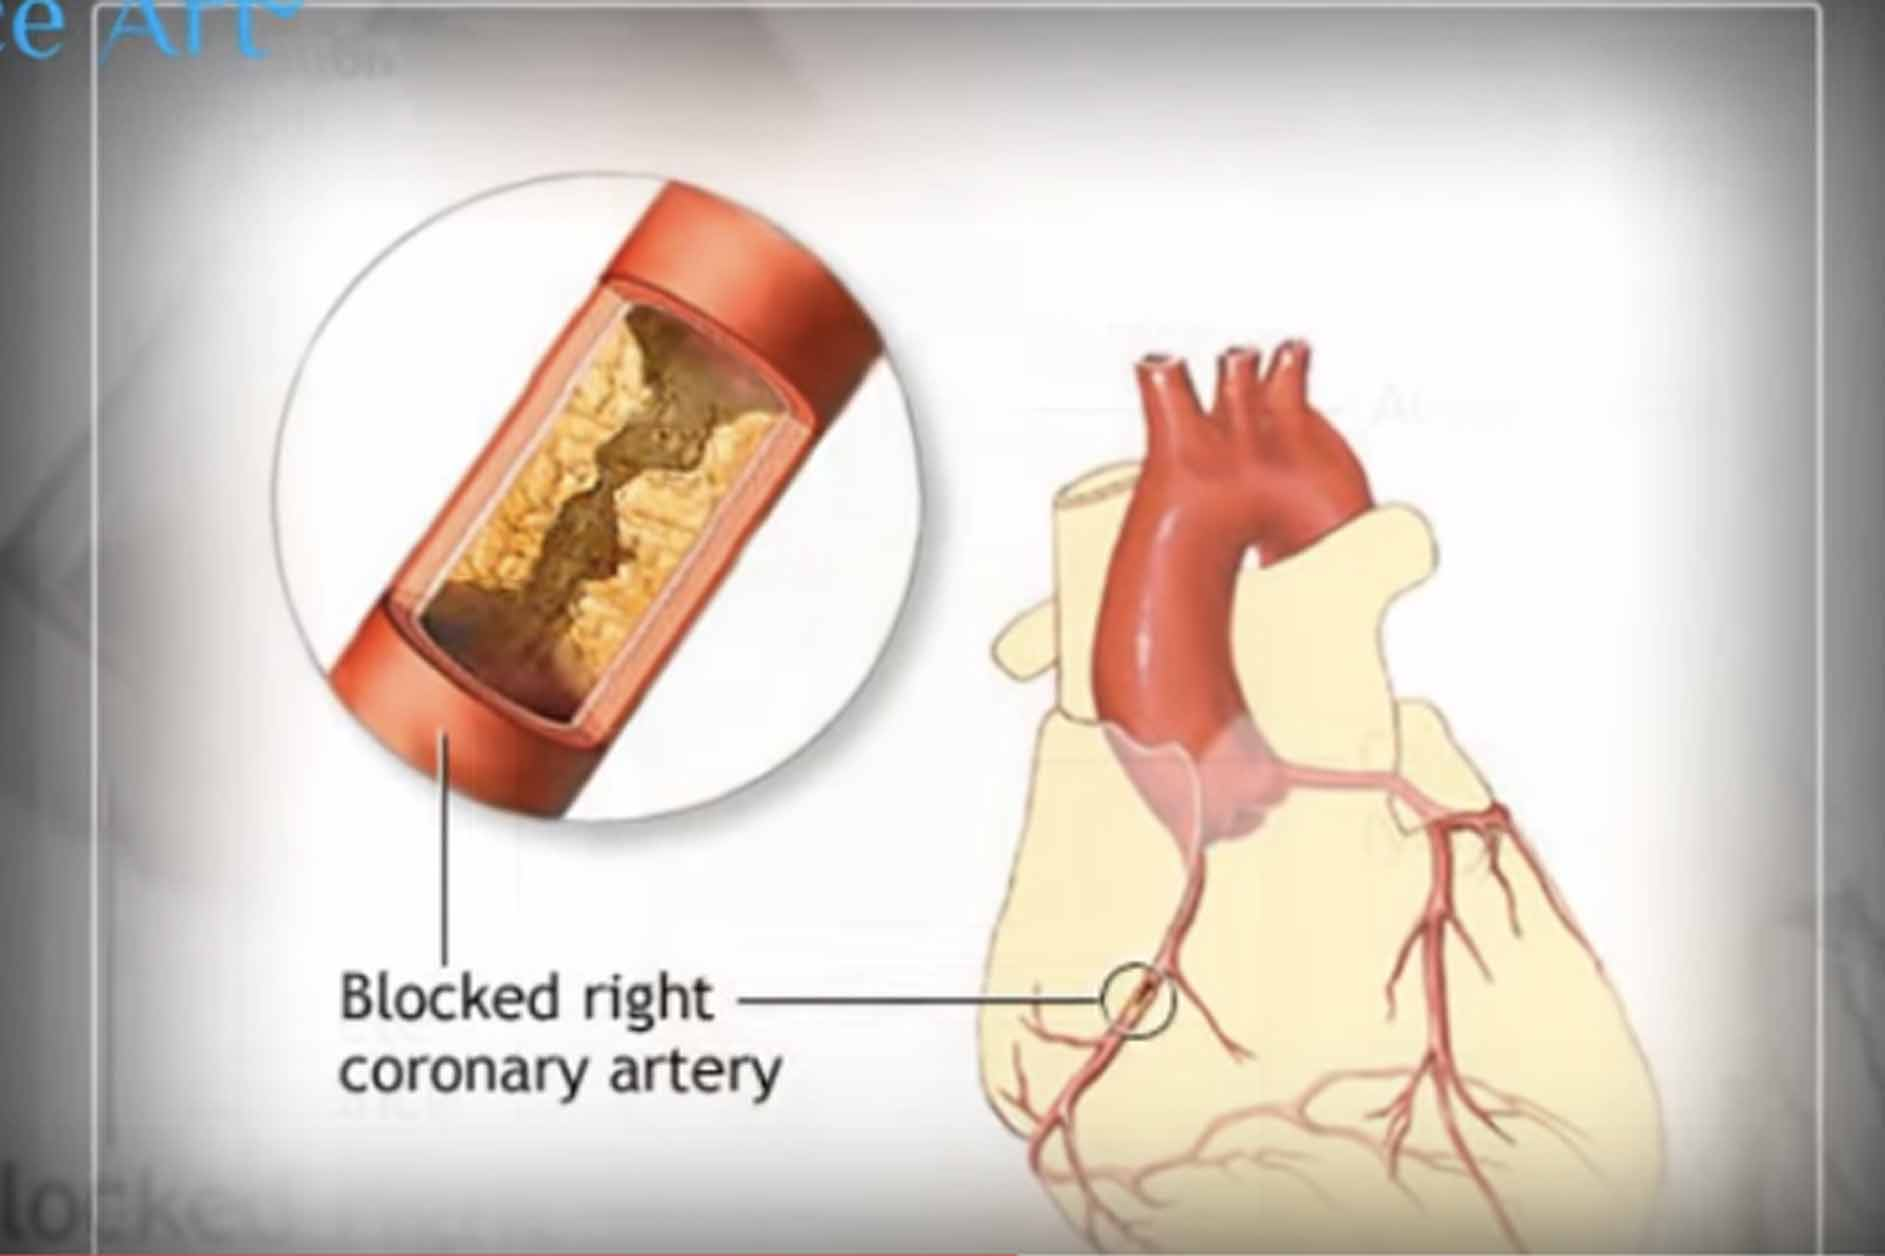 Angioplasty – explained